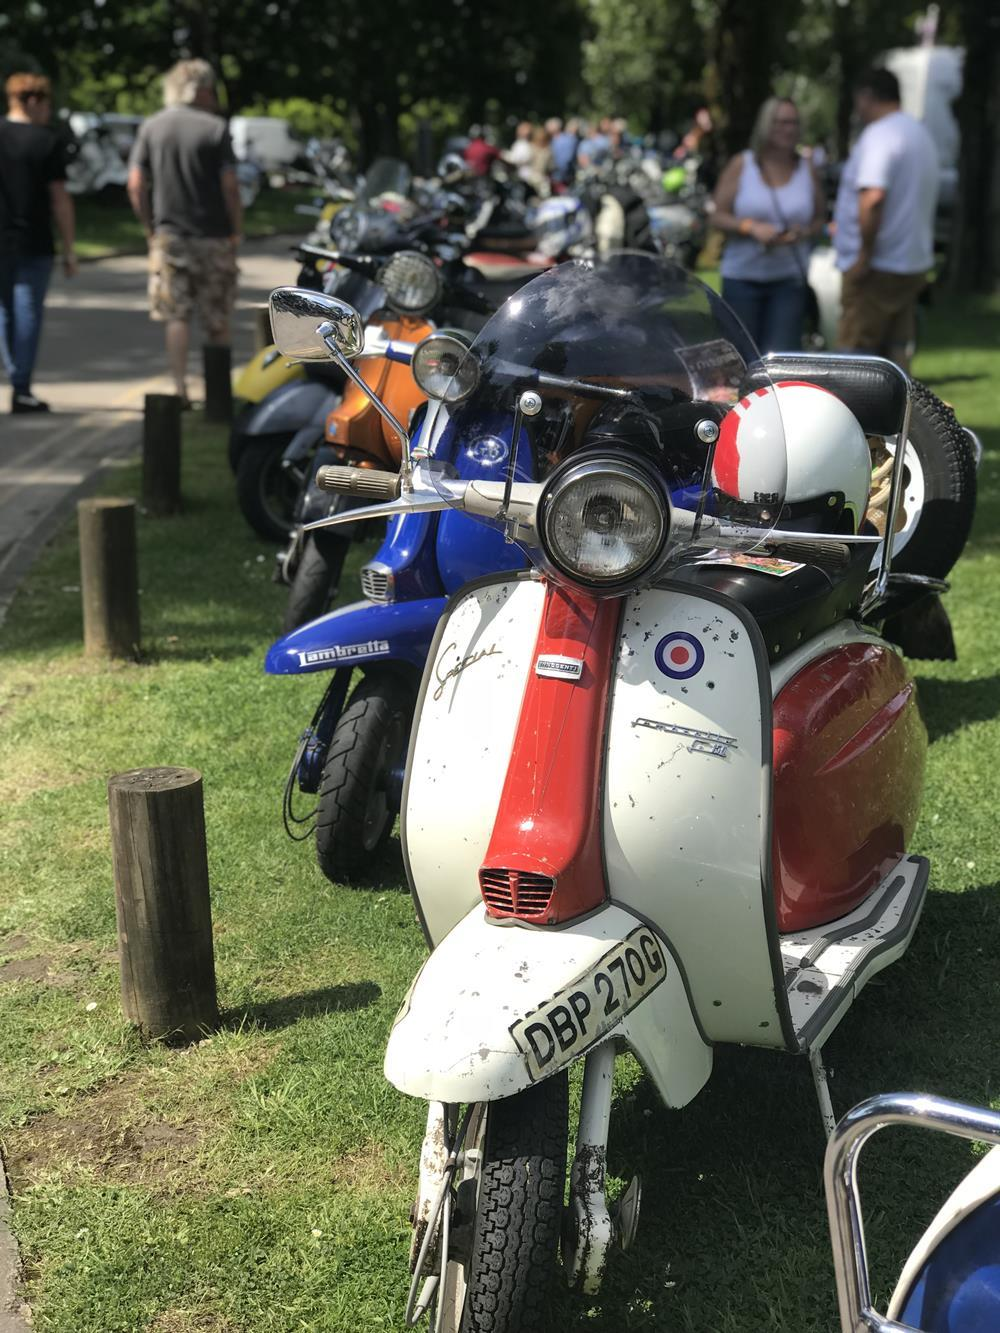 Group of scooters